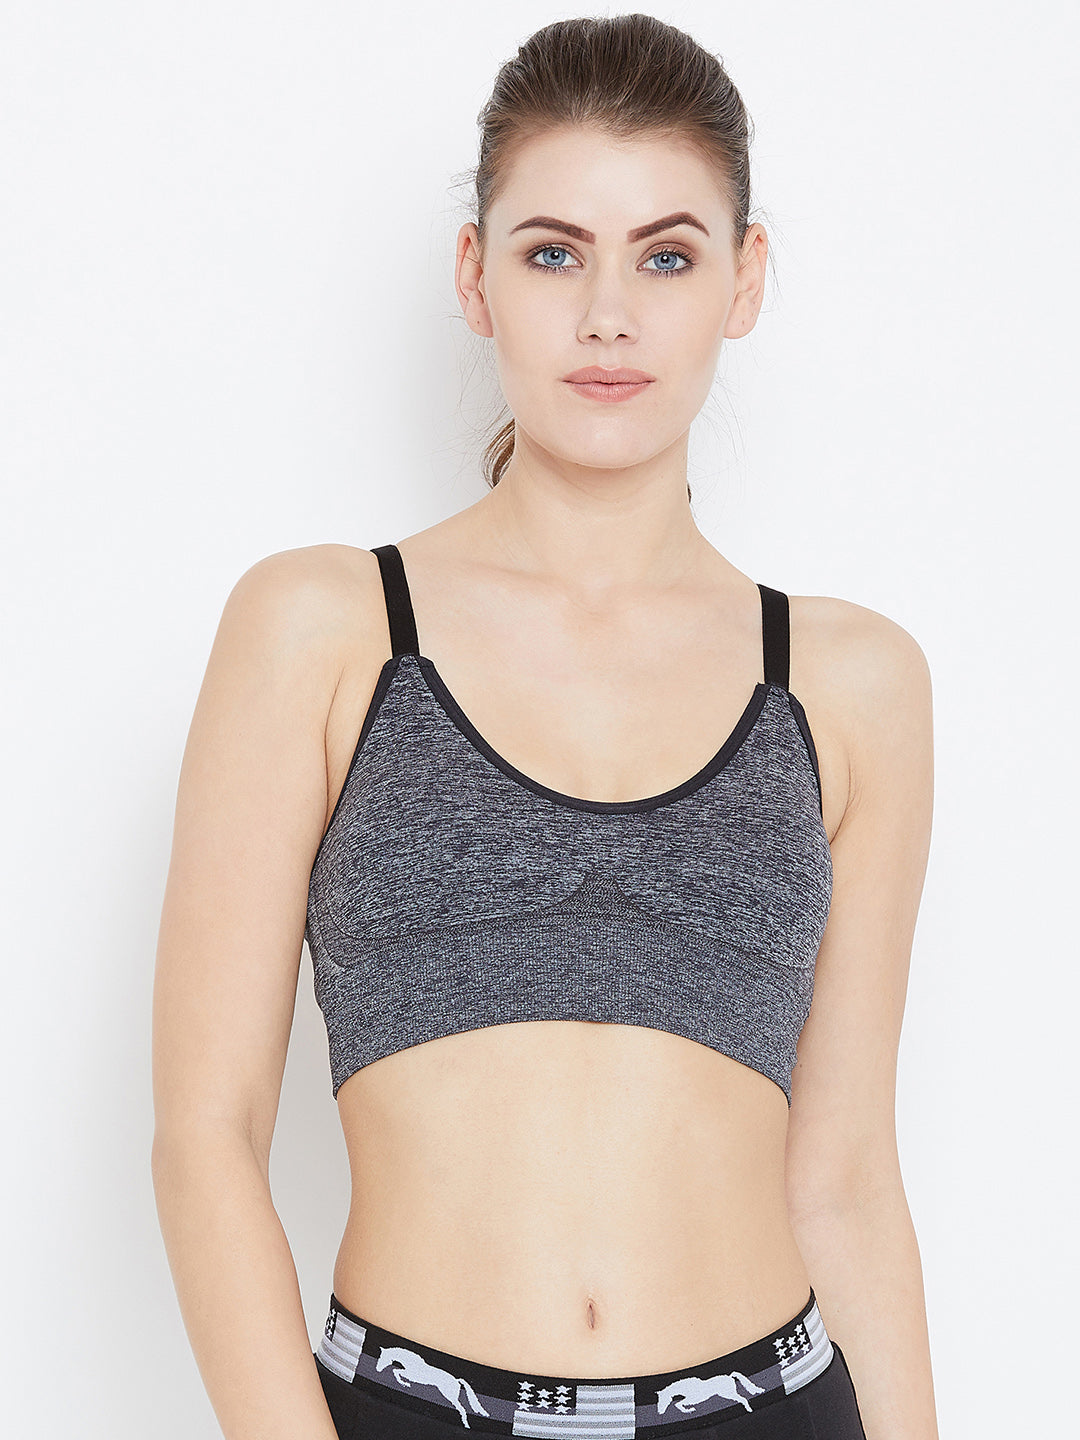 JUMP USA Women Black Non-Wired Lightly Padded Sports Bra - JUMP USA